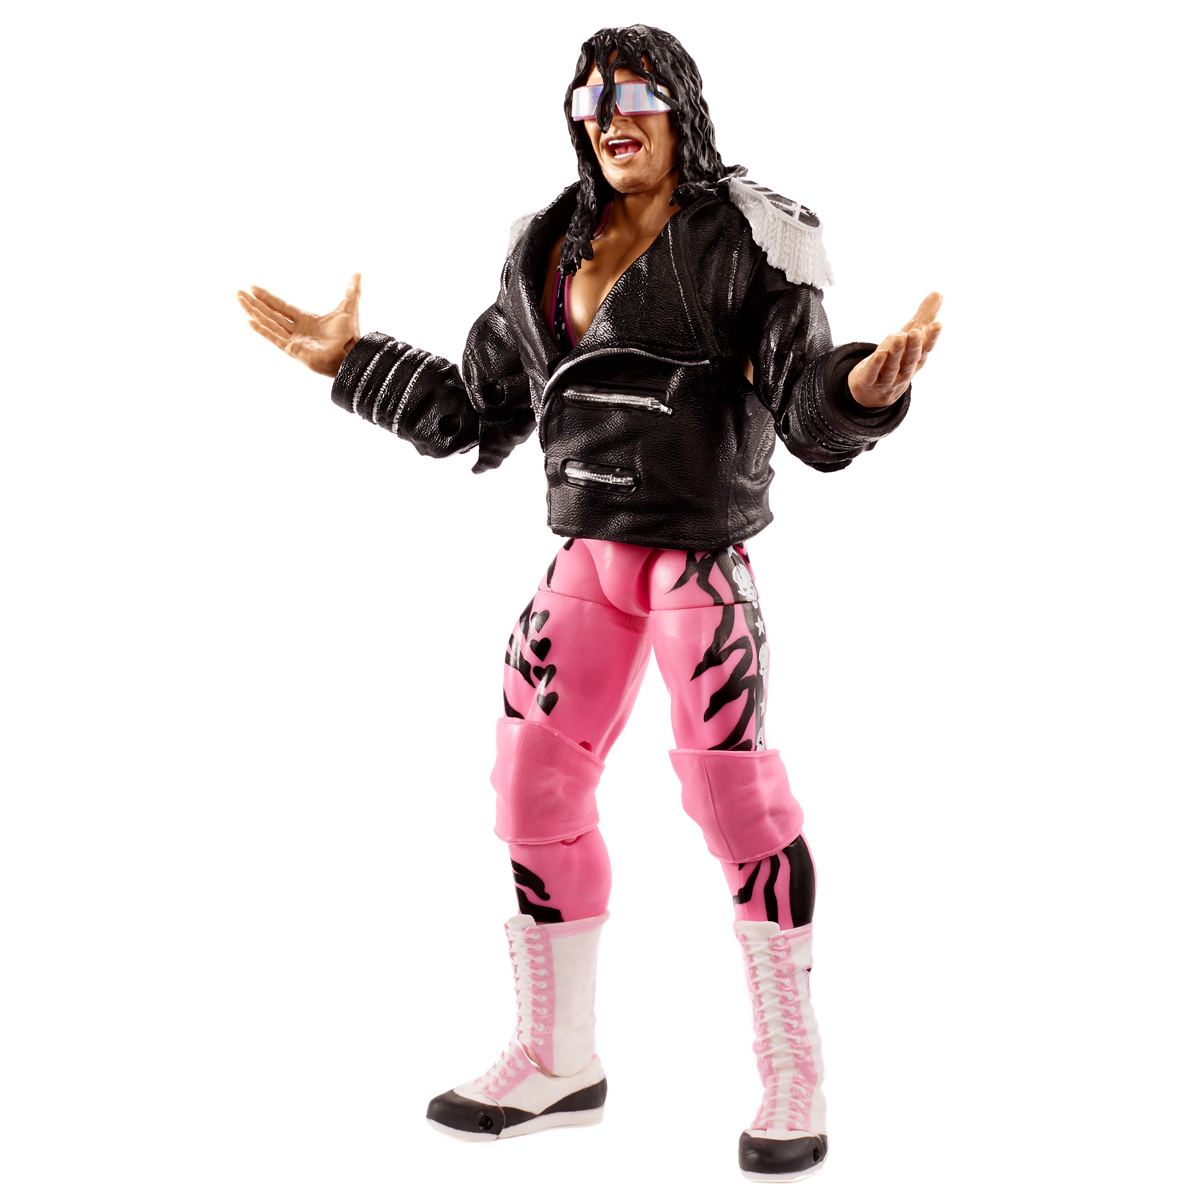 Wwe Ultimate Edition Bret Hitman Hart Action Figure The Entertainer